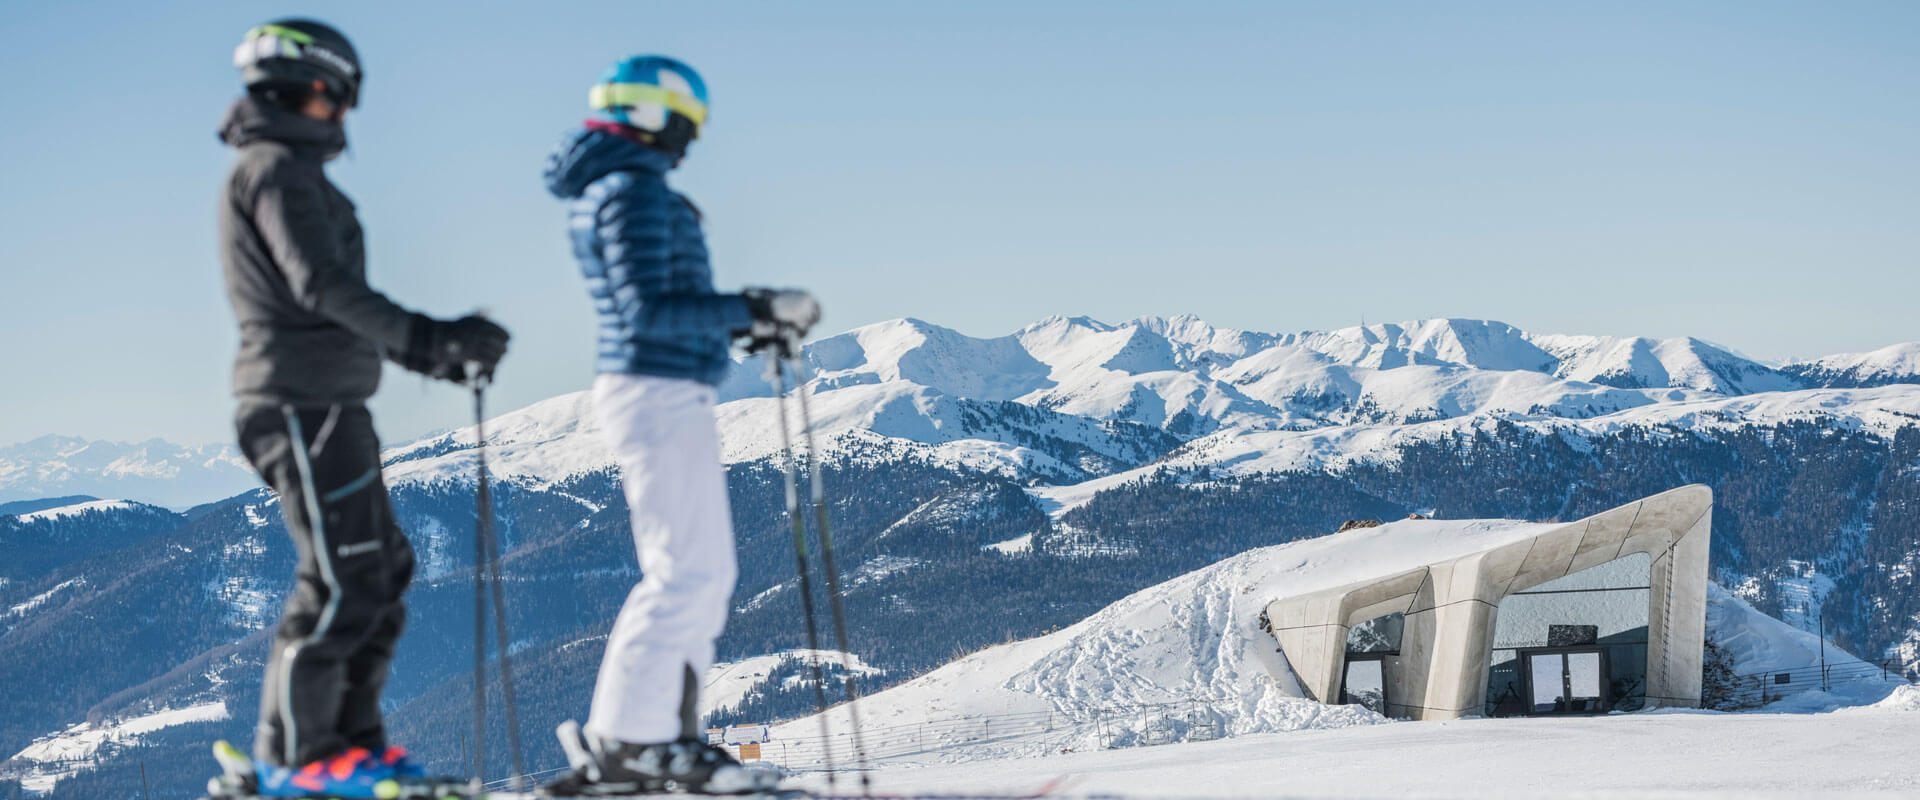 What will I experience in the winter at Plan de Corones & environs?